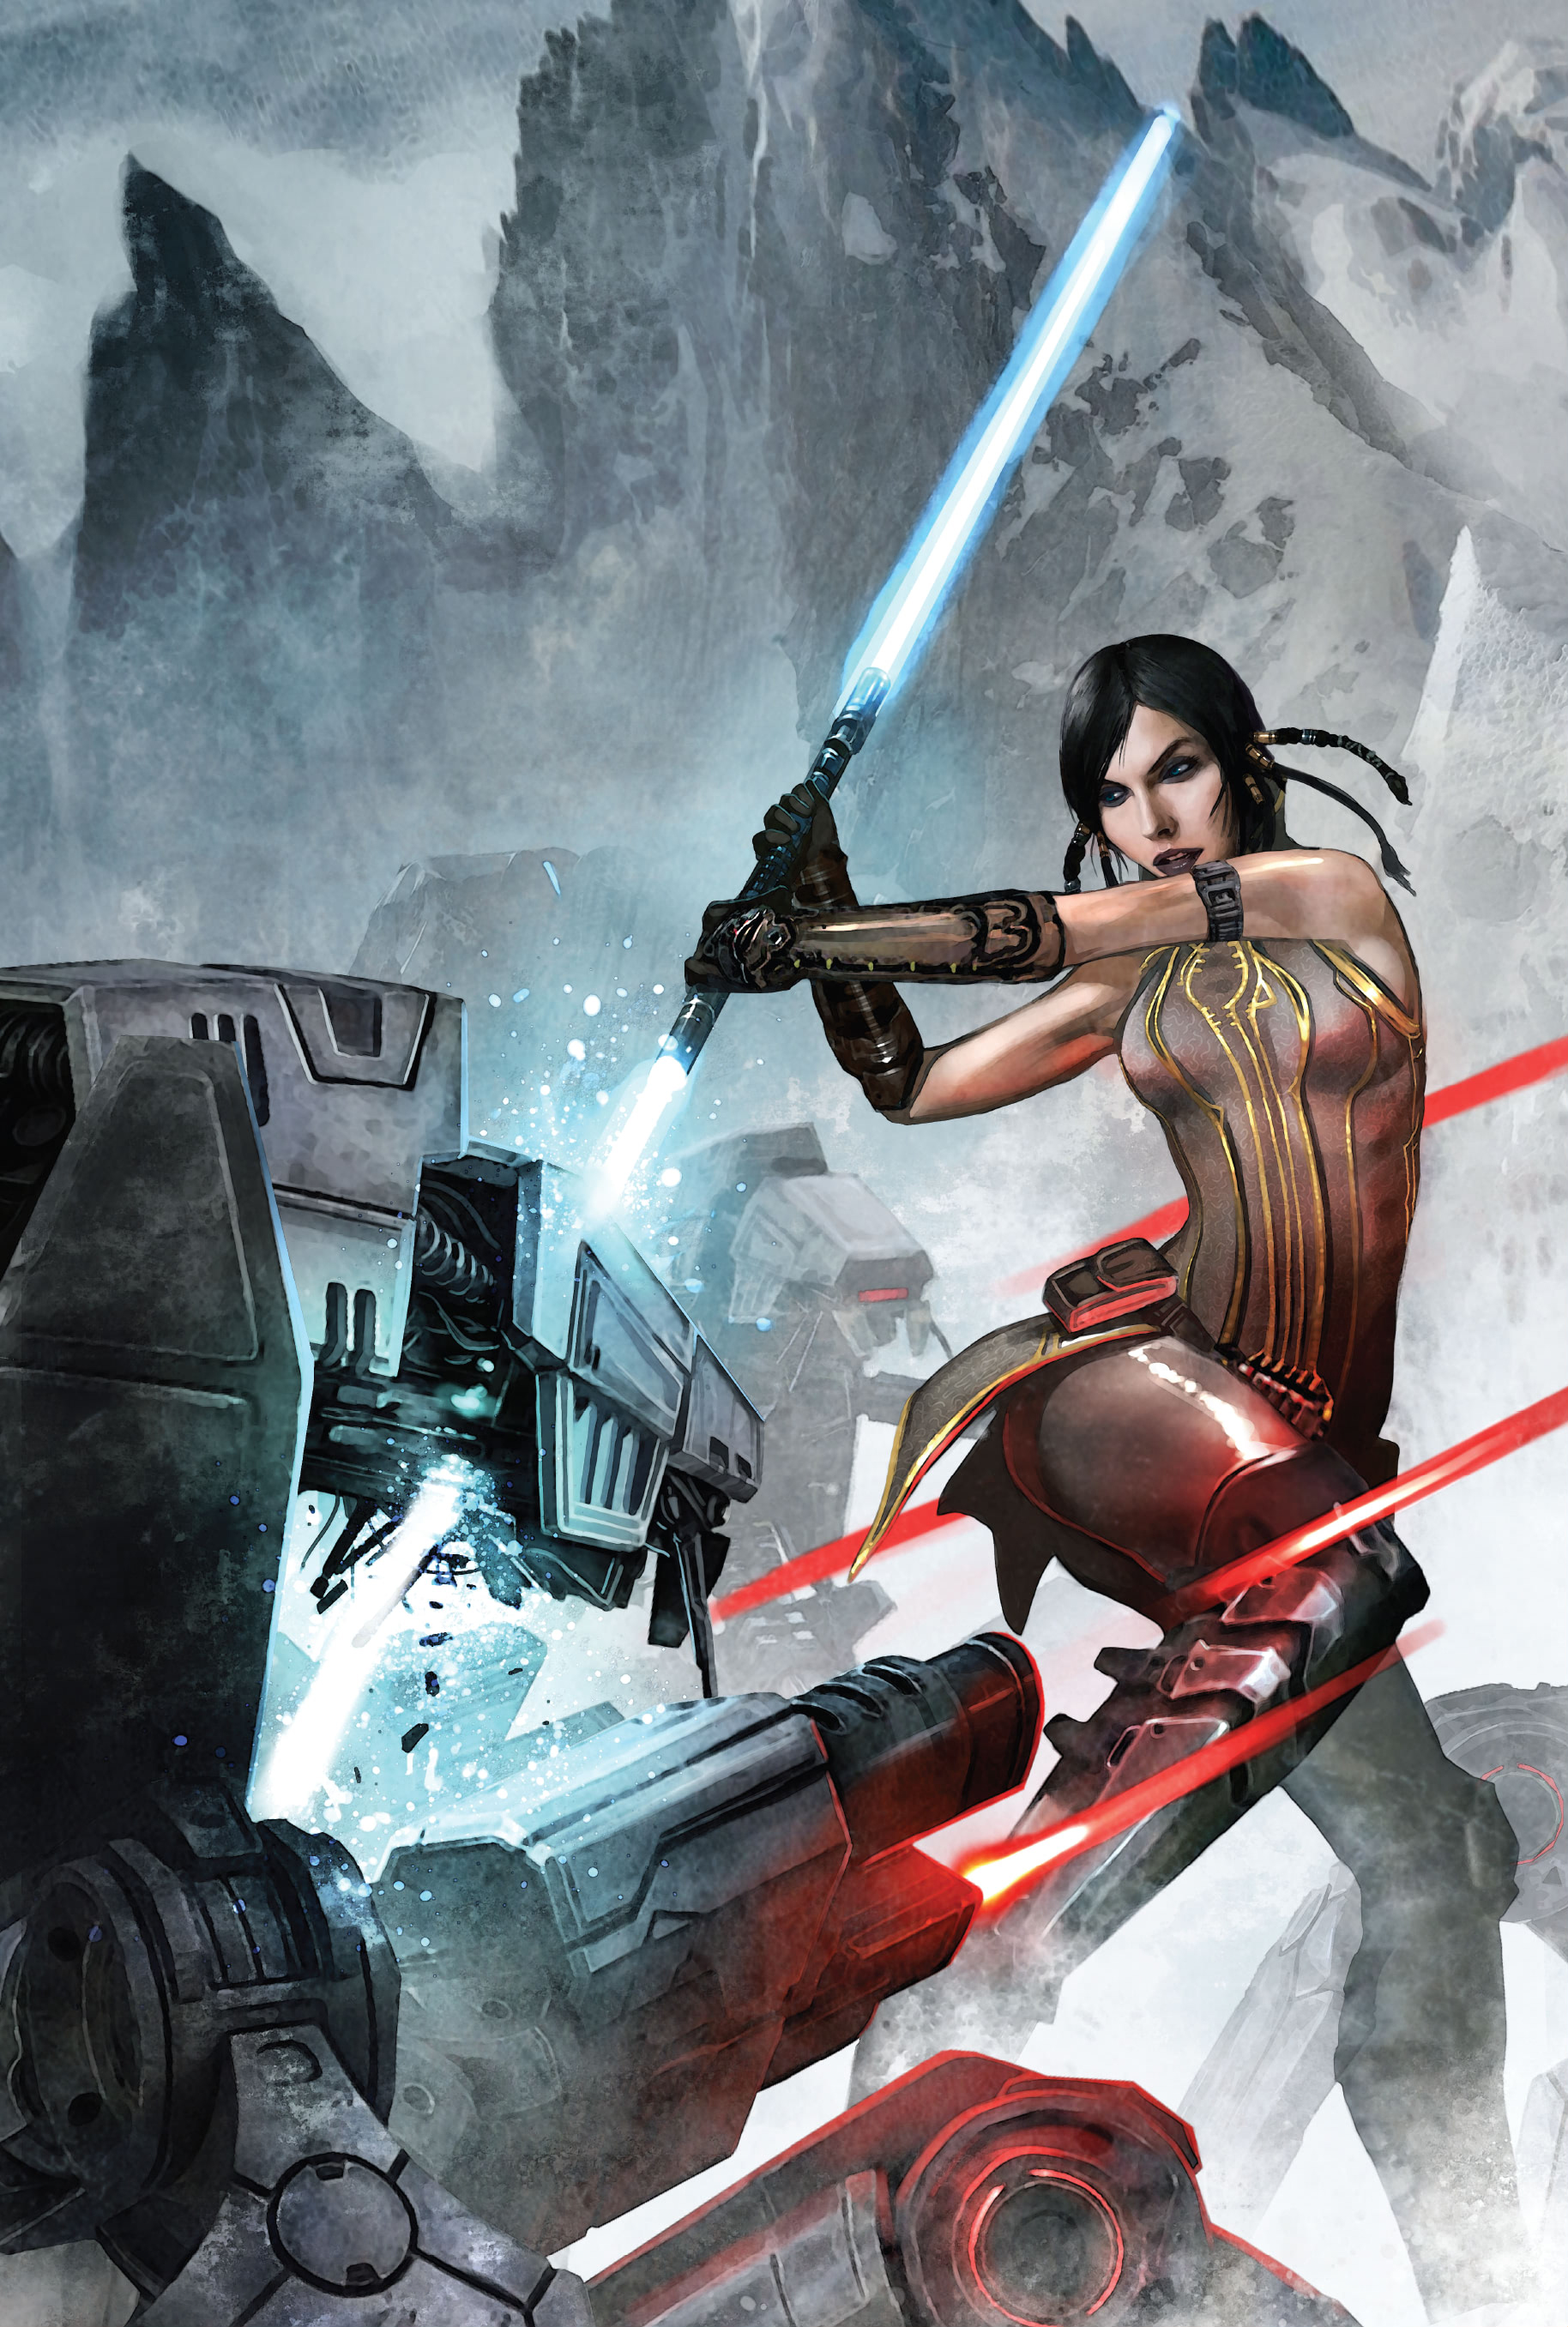 Satele Shan's third double-bladed lightsaber